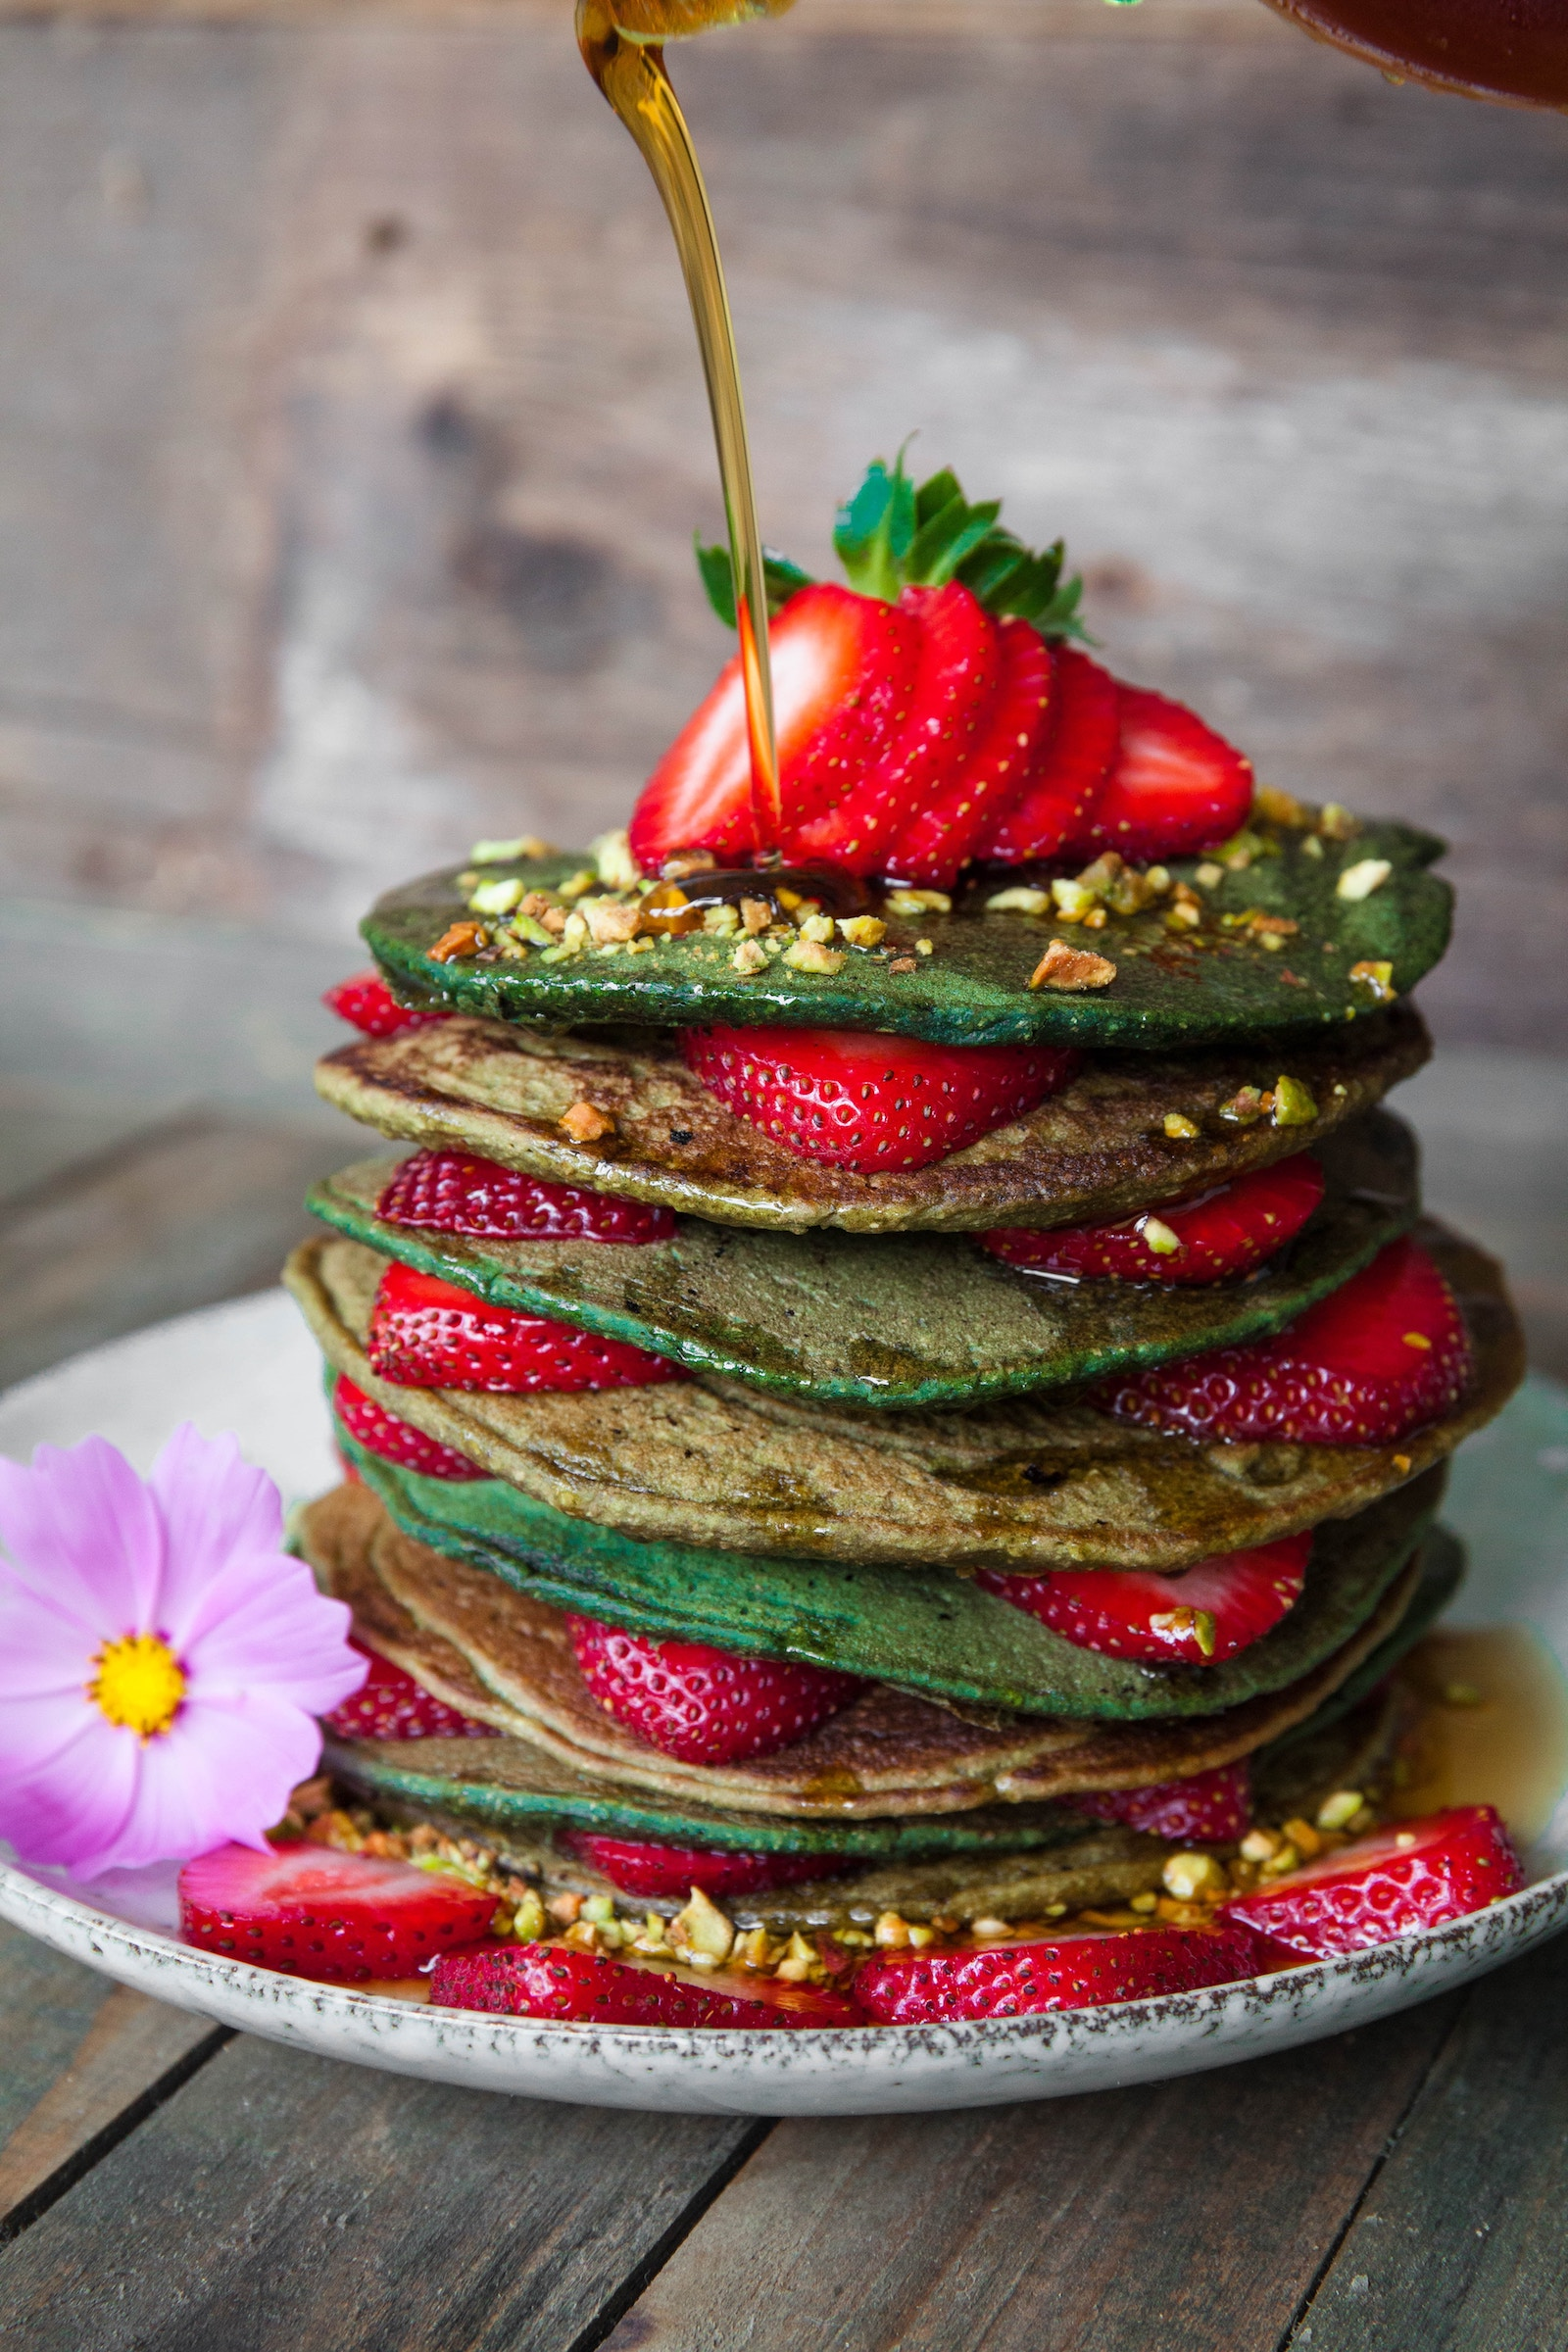 Zucchini-Erdbeer-Bananen Protein Pancakes Rezept - Photo by Toa Heftiba on Unsplash